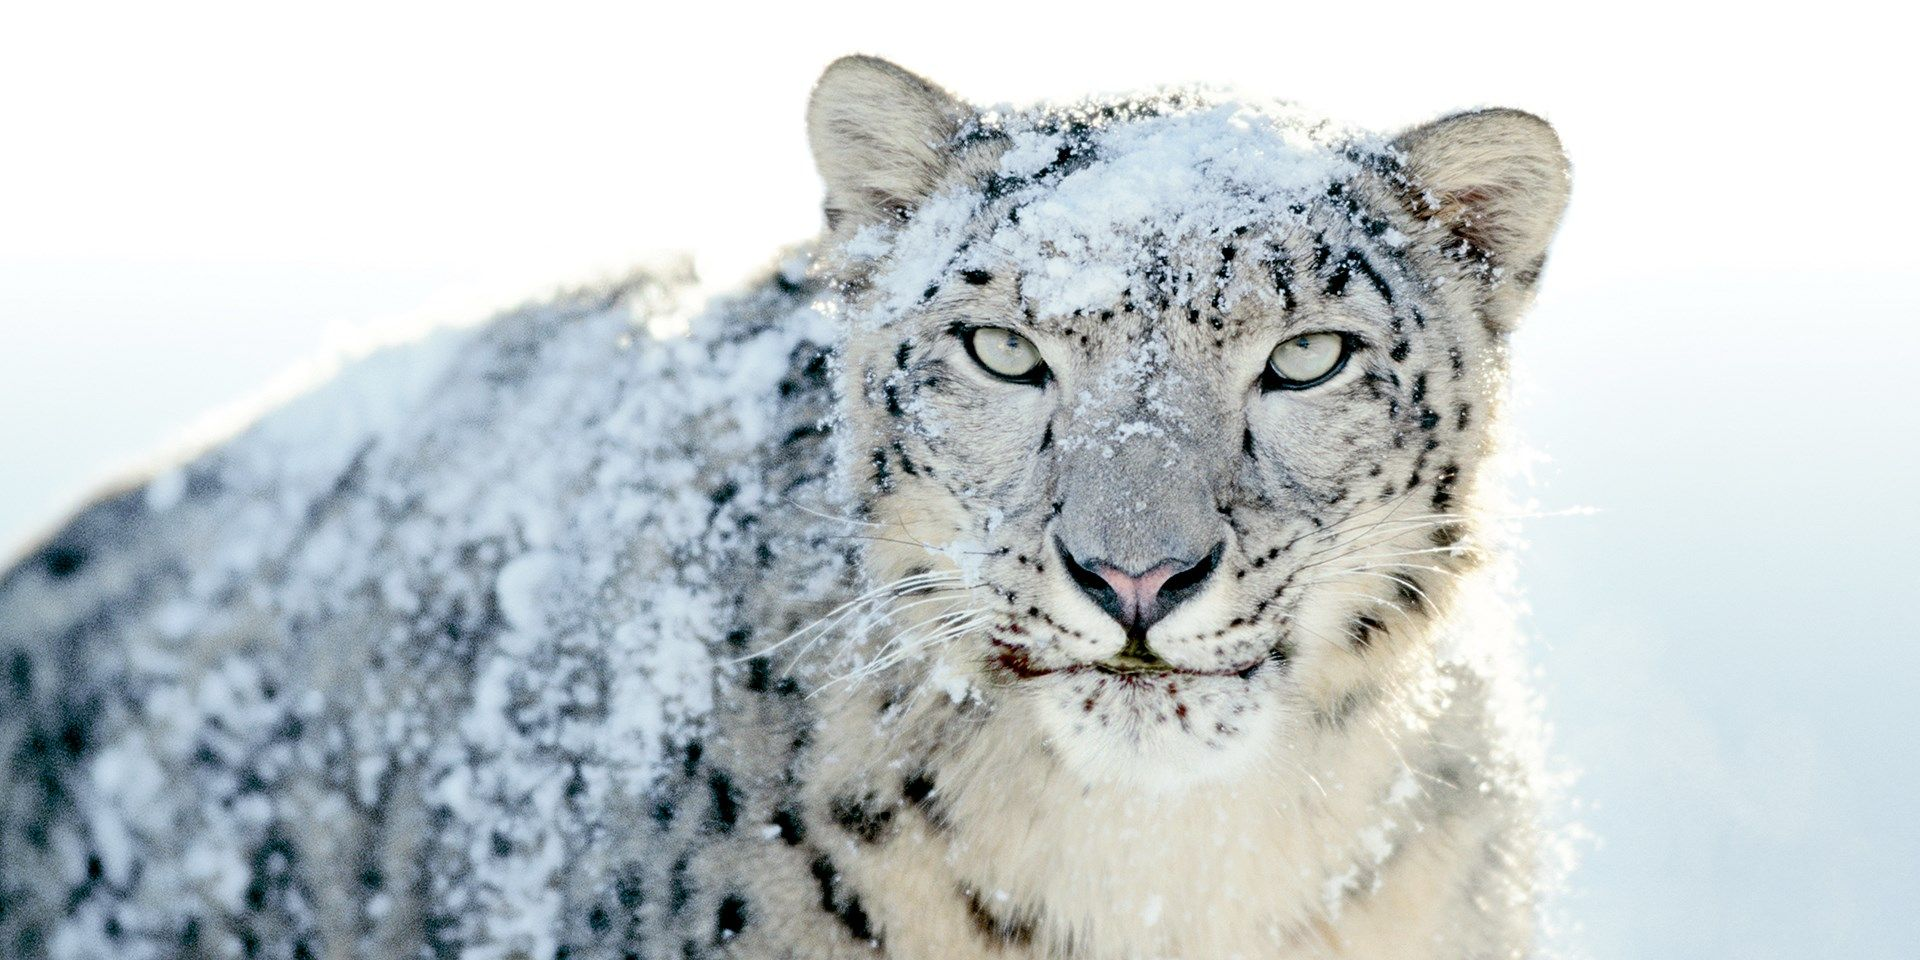 Image Result For National Geographic Photo Of Snow Leopards With Images Leopard Pictures Snow Leopard Pictures Snow Leopard Wallpaper